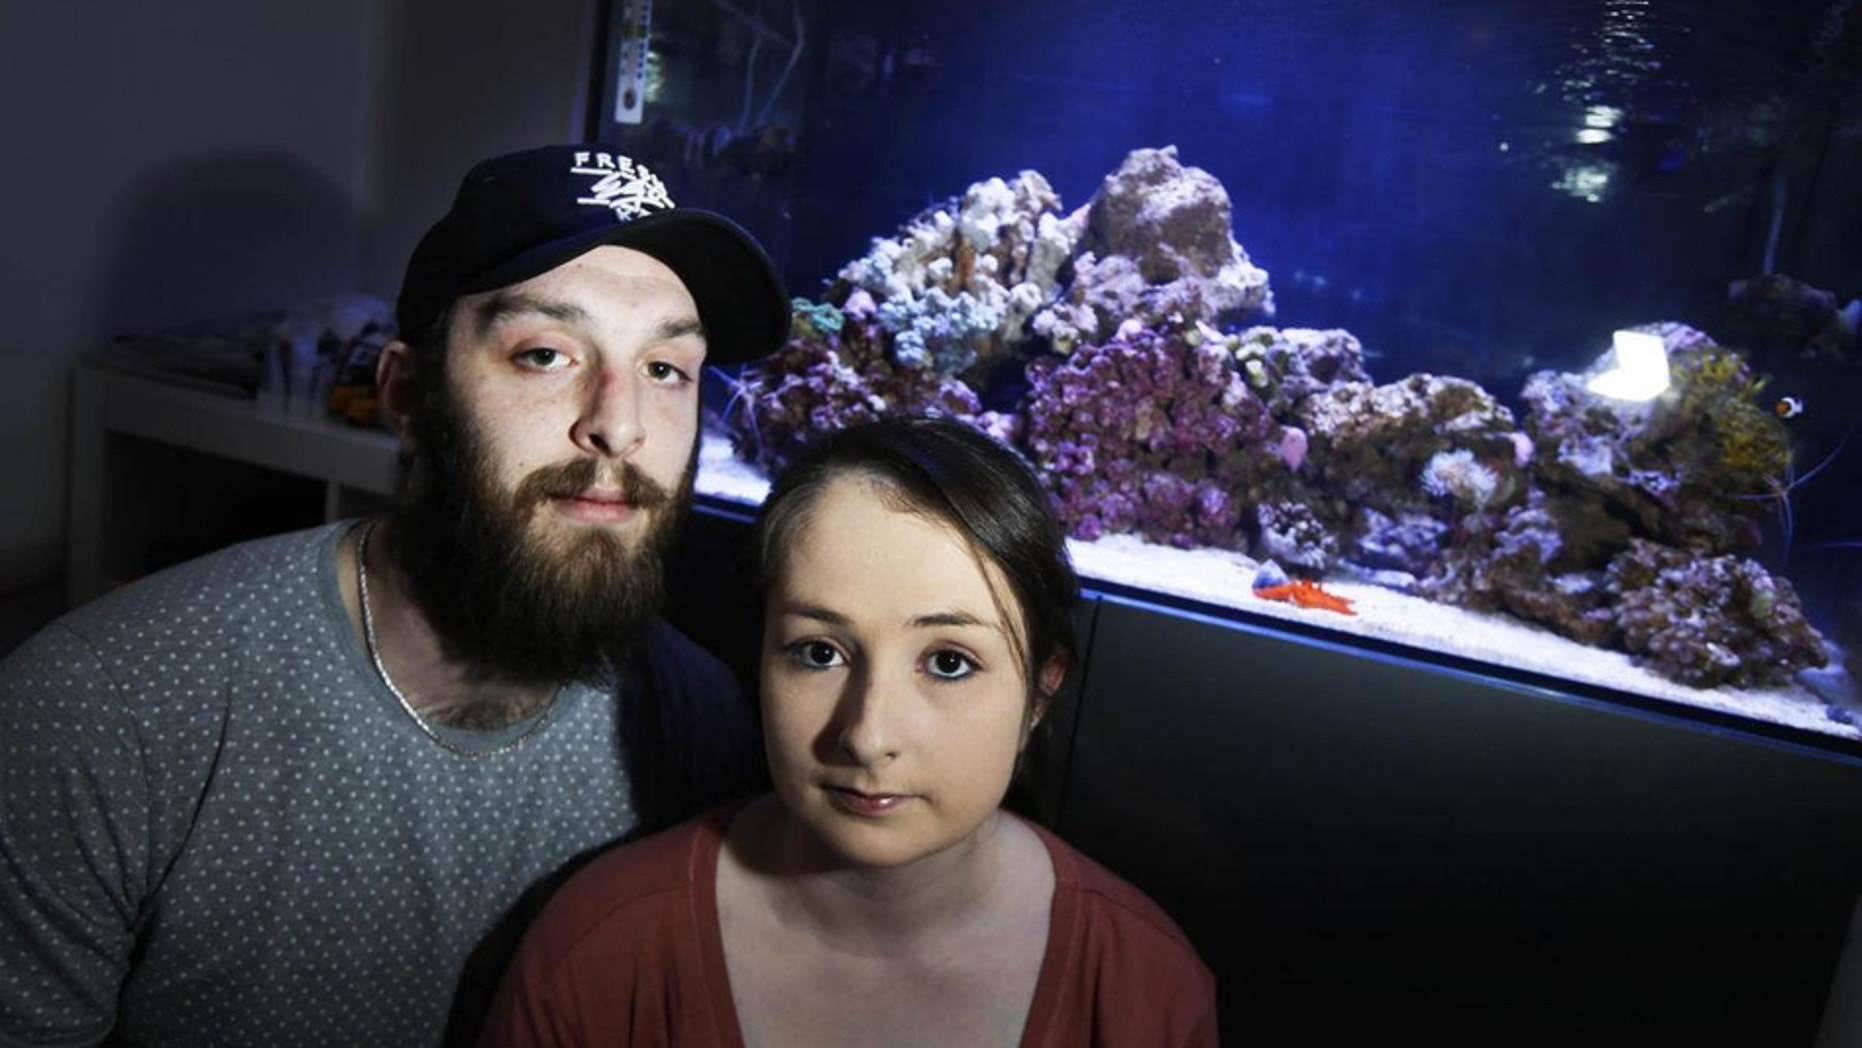 Chris Matthews and his girlfriend were hospitalized on March 29, 2018, after suffering from toxic fumes released by coral.